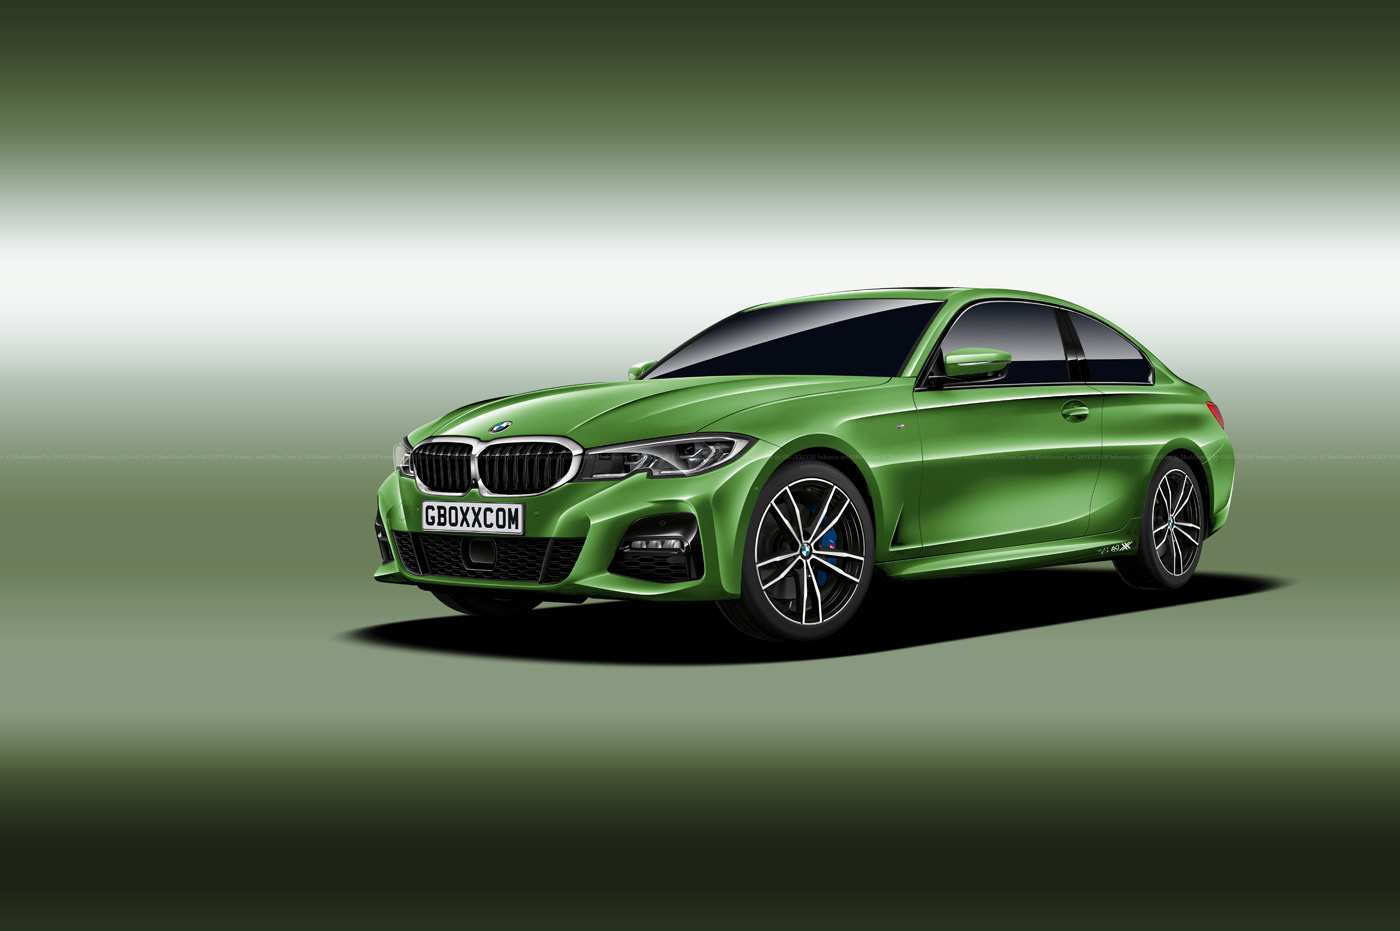 97 Gallery of 2020 Bmw 4 Series Release Date Specs for 2020 Bmw 4 Series Release Date